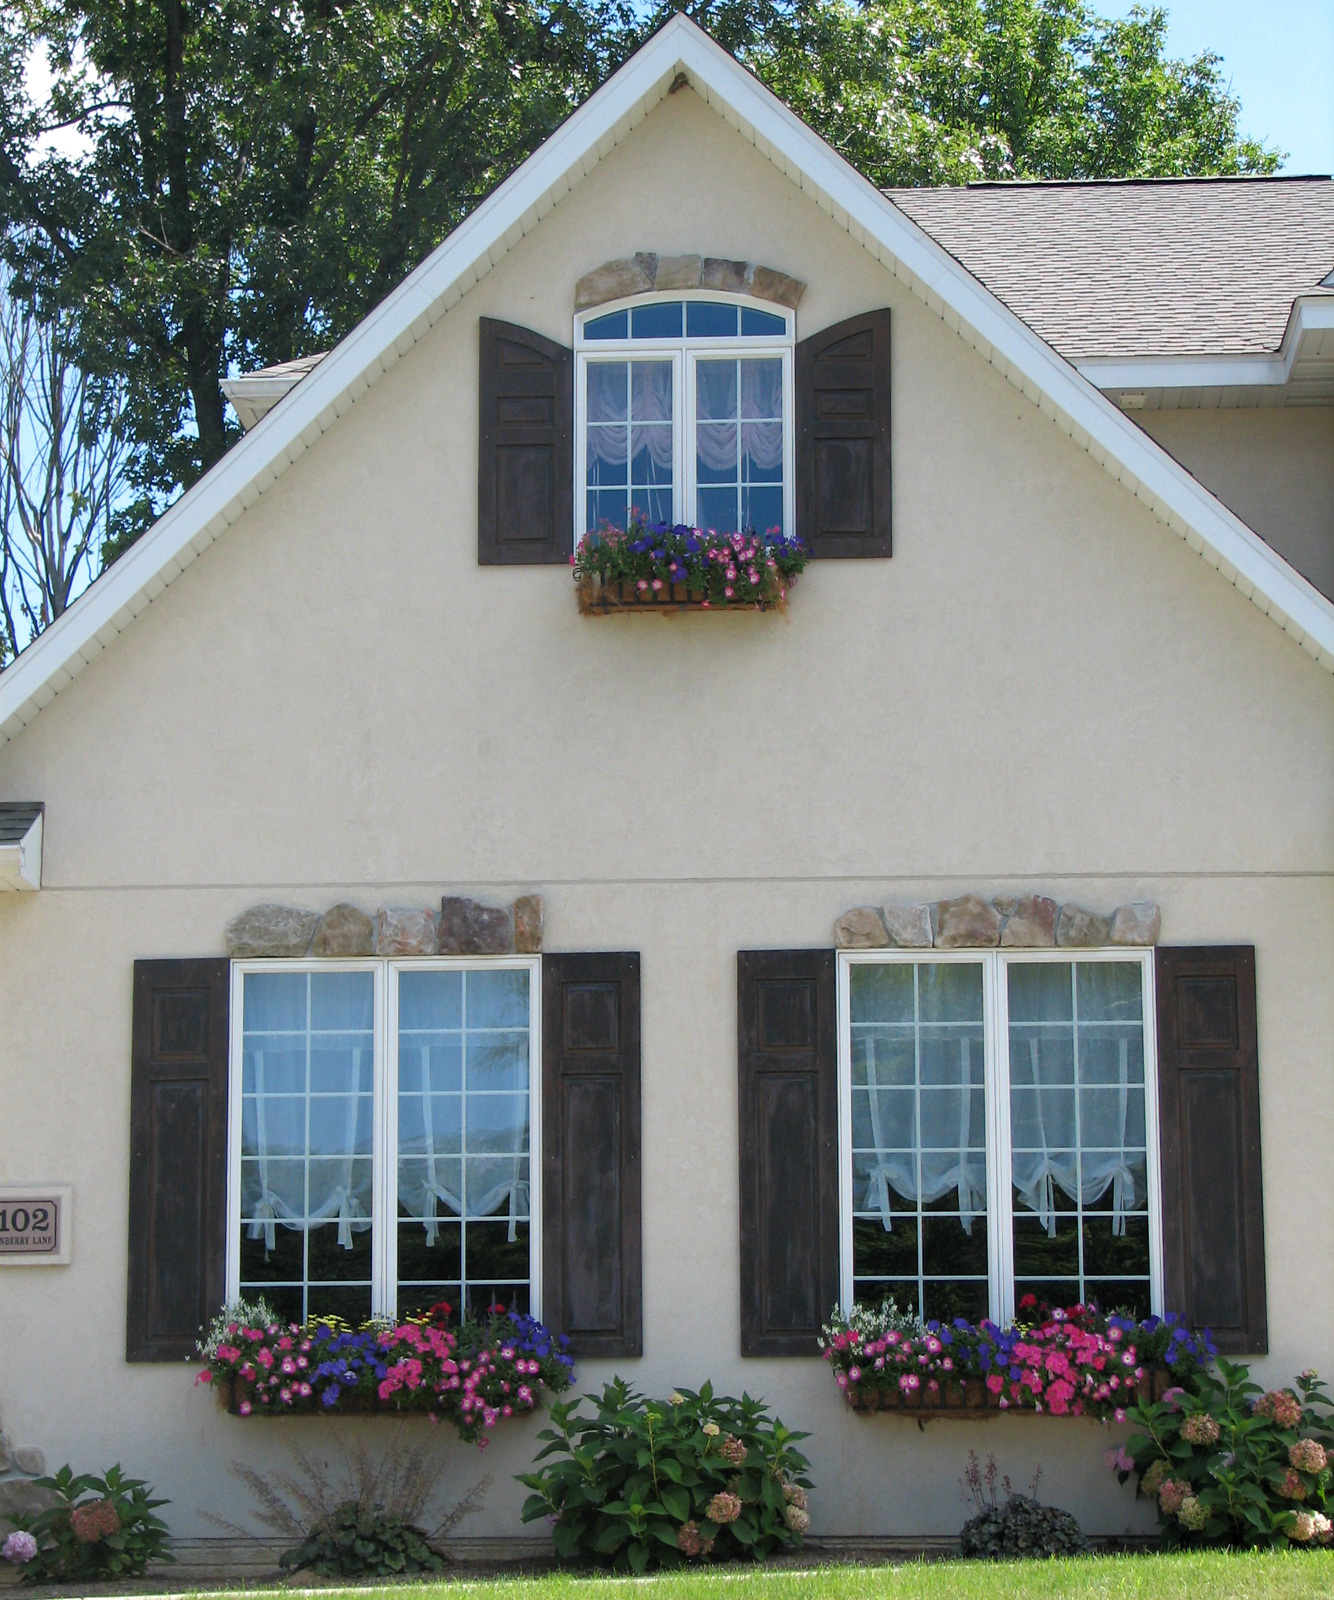 How to Install Arched Top Shutters Correctly